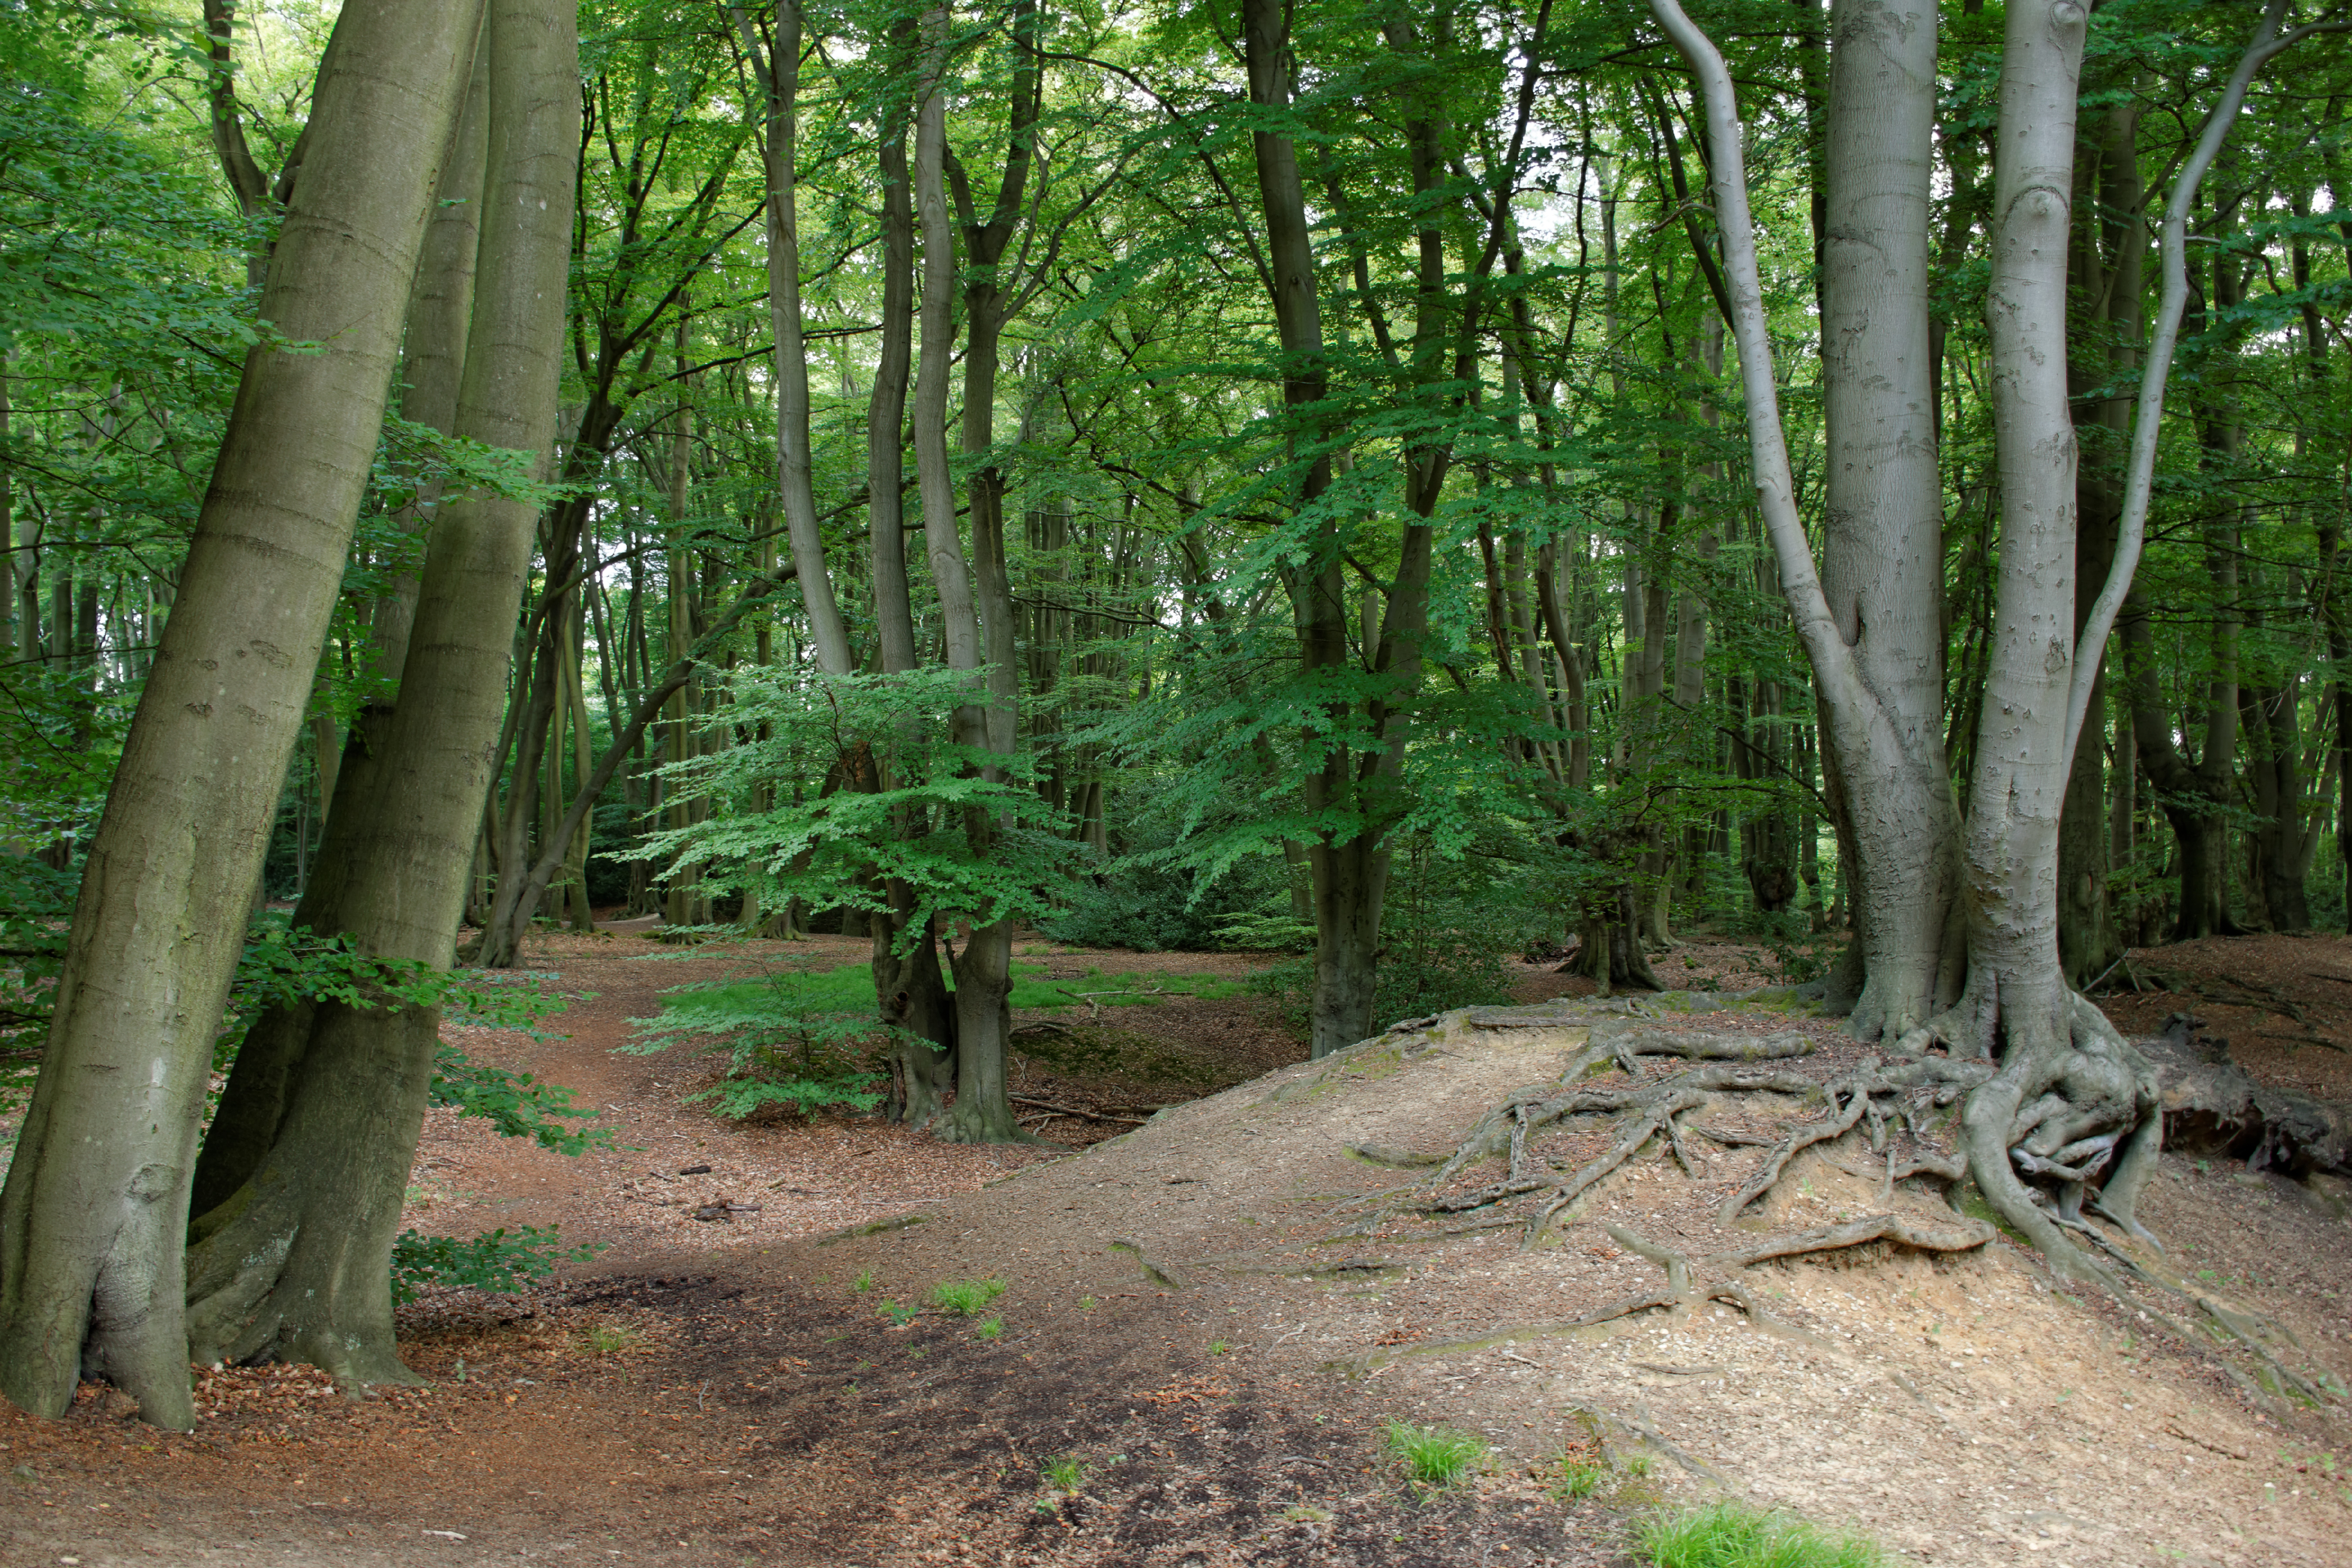 Loughton Camp, Epping Forest